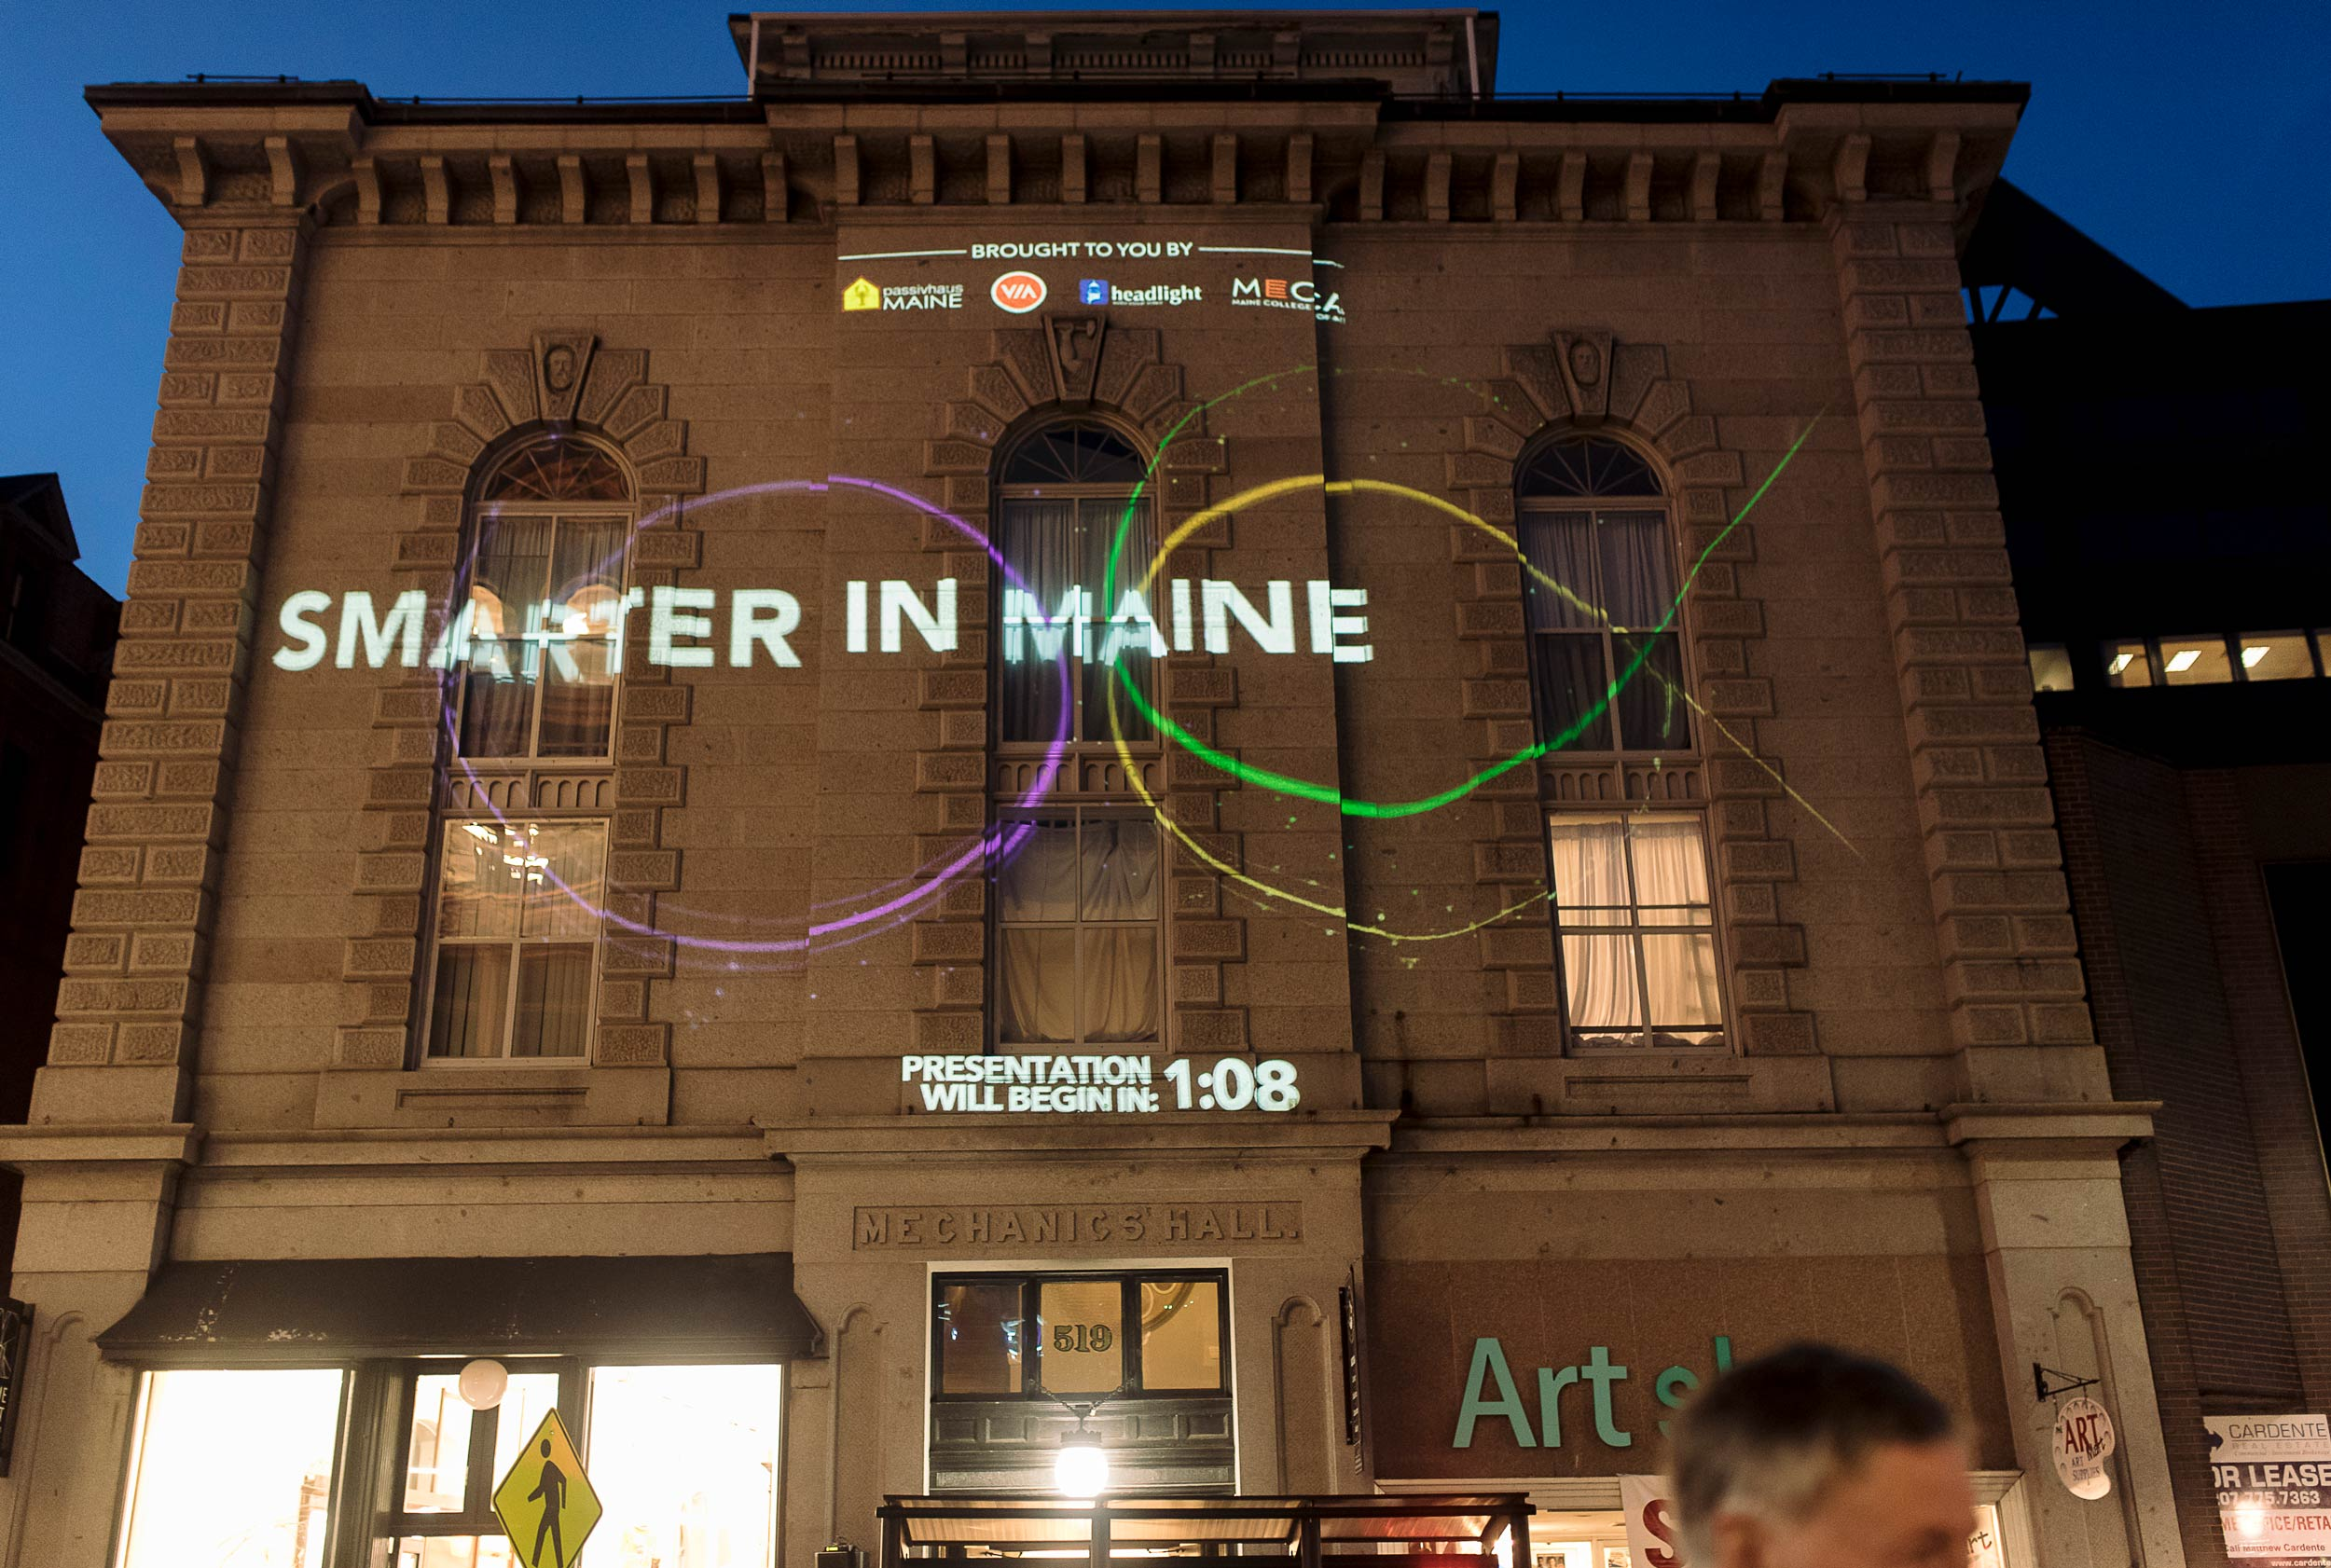 On the mild October evening during Portland's First Friday Art Walk, the display captured the attention of the many passersby on Congress Street.